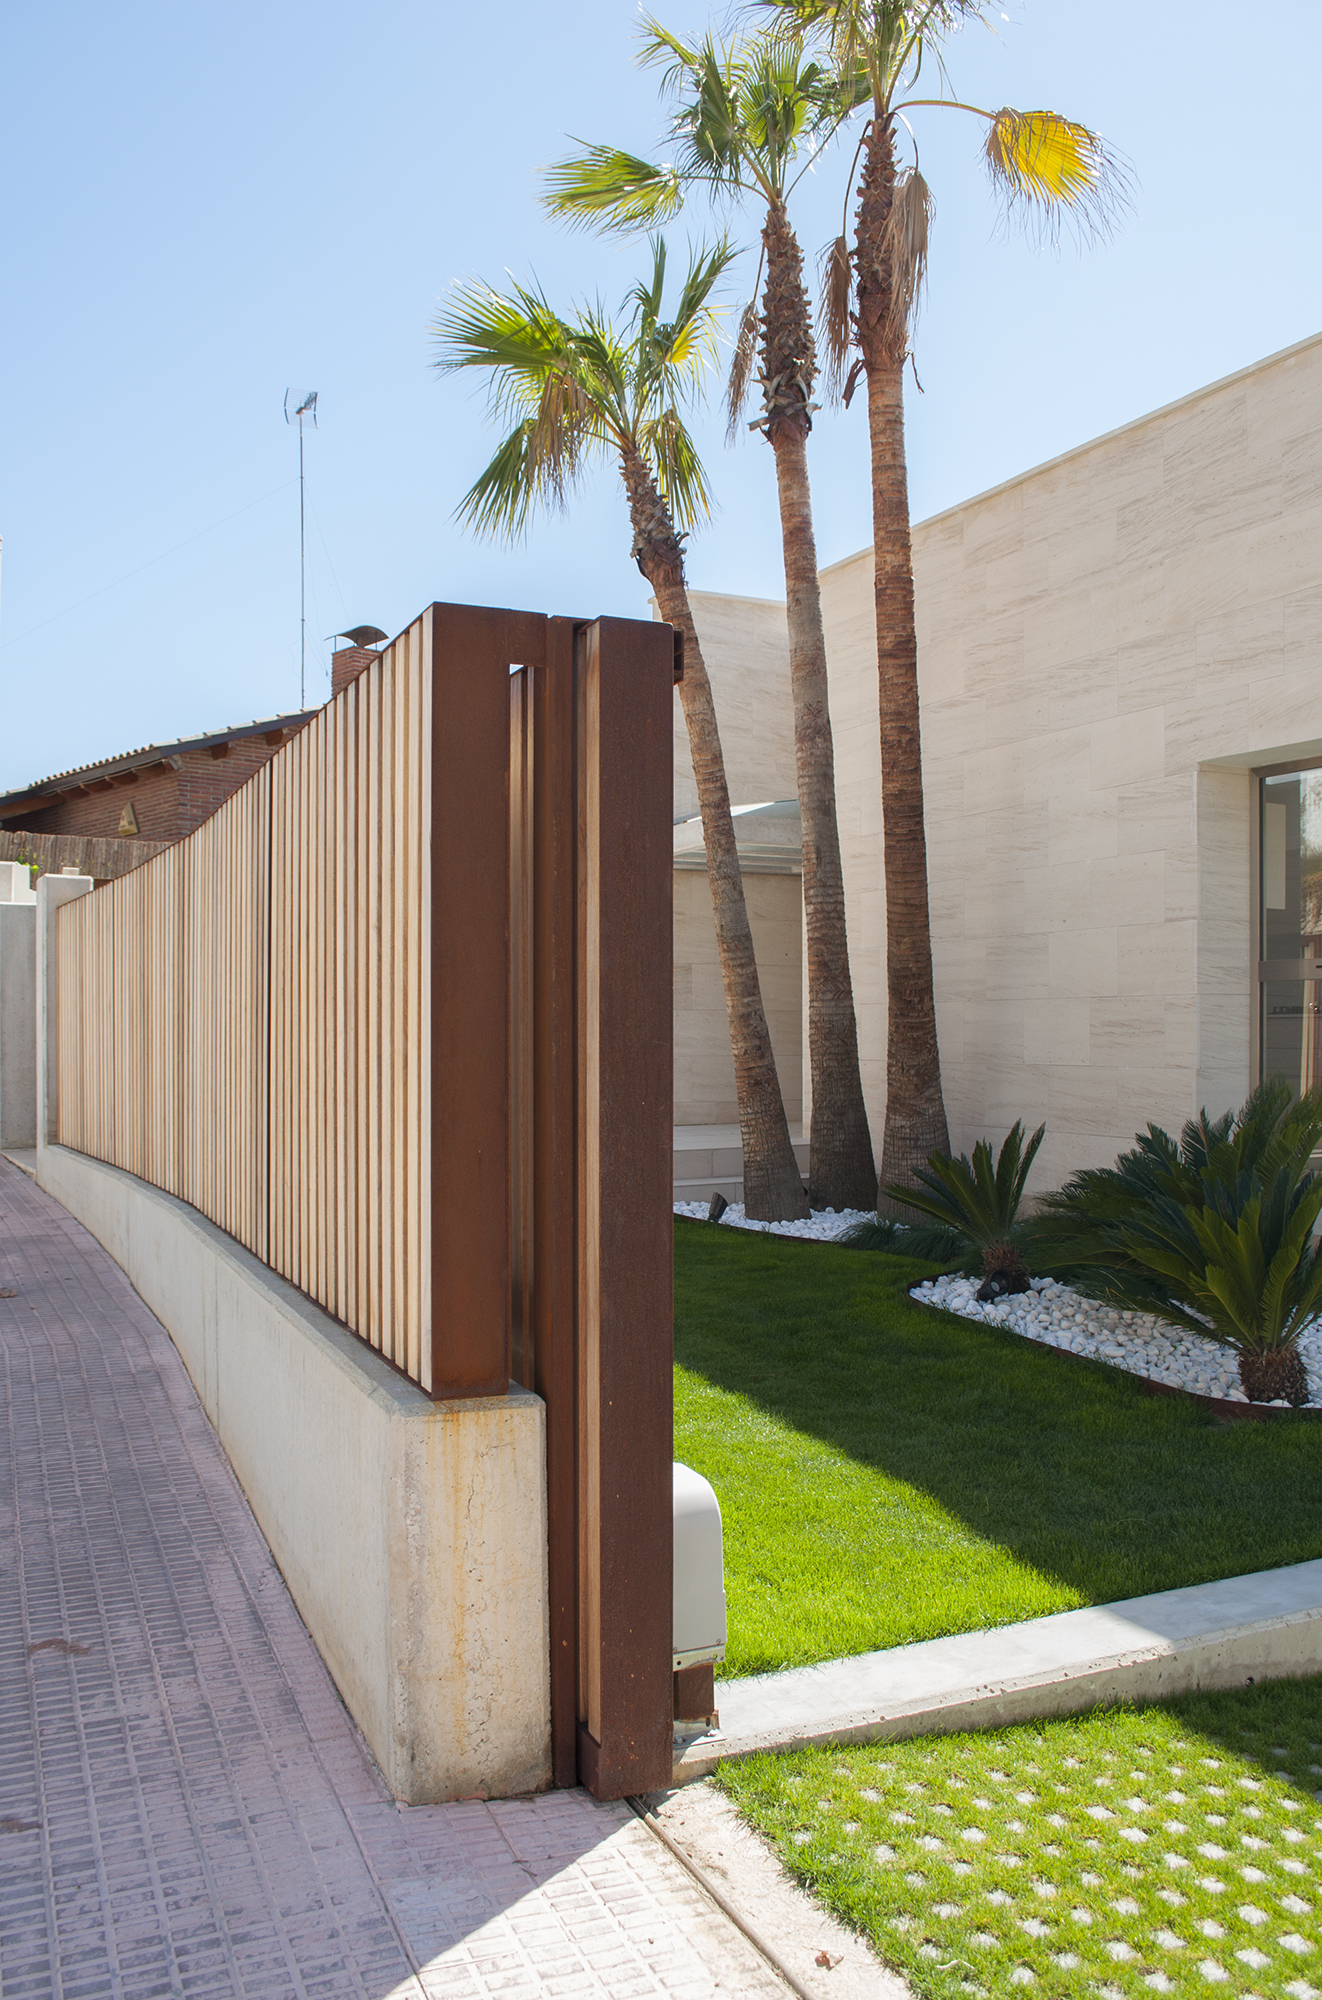 5-rardo-architects-houses-sitges-elevation-entrance-wood-fence